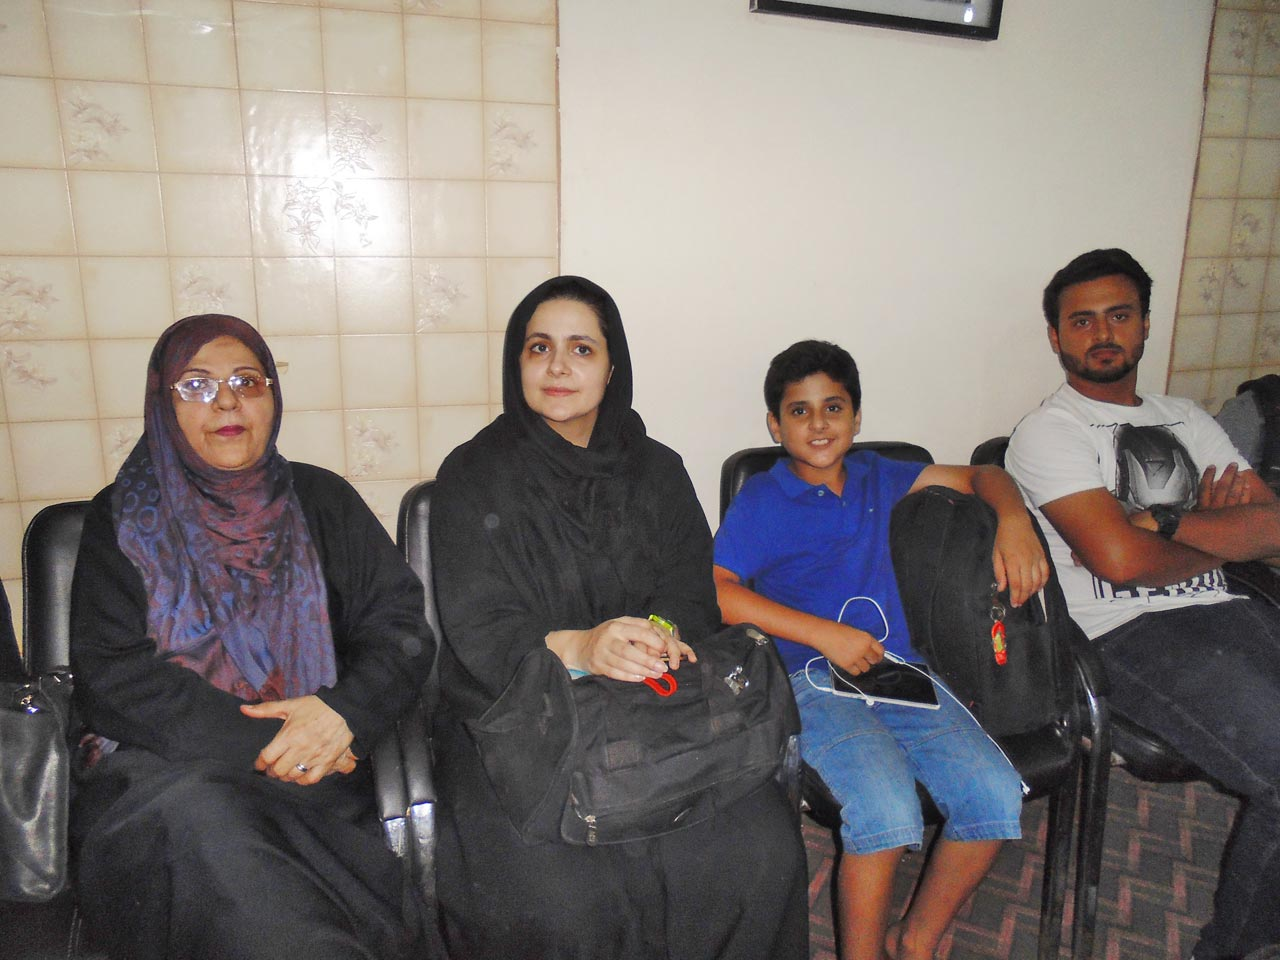 Mehtab Saeed Khan's family